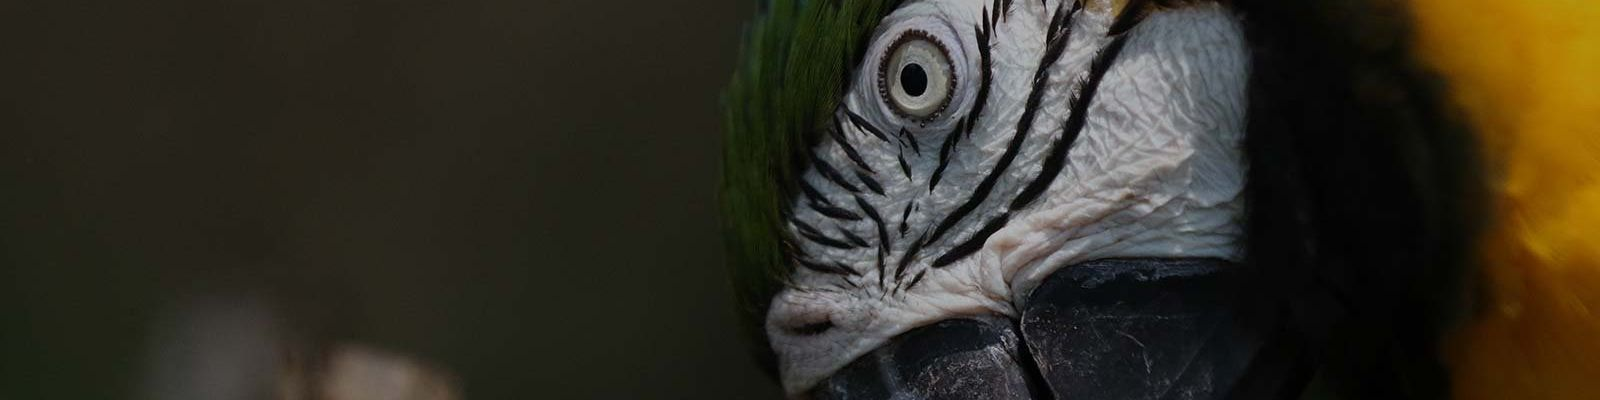 Zoom lens parrot Close Up